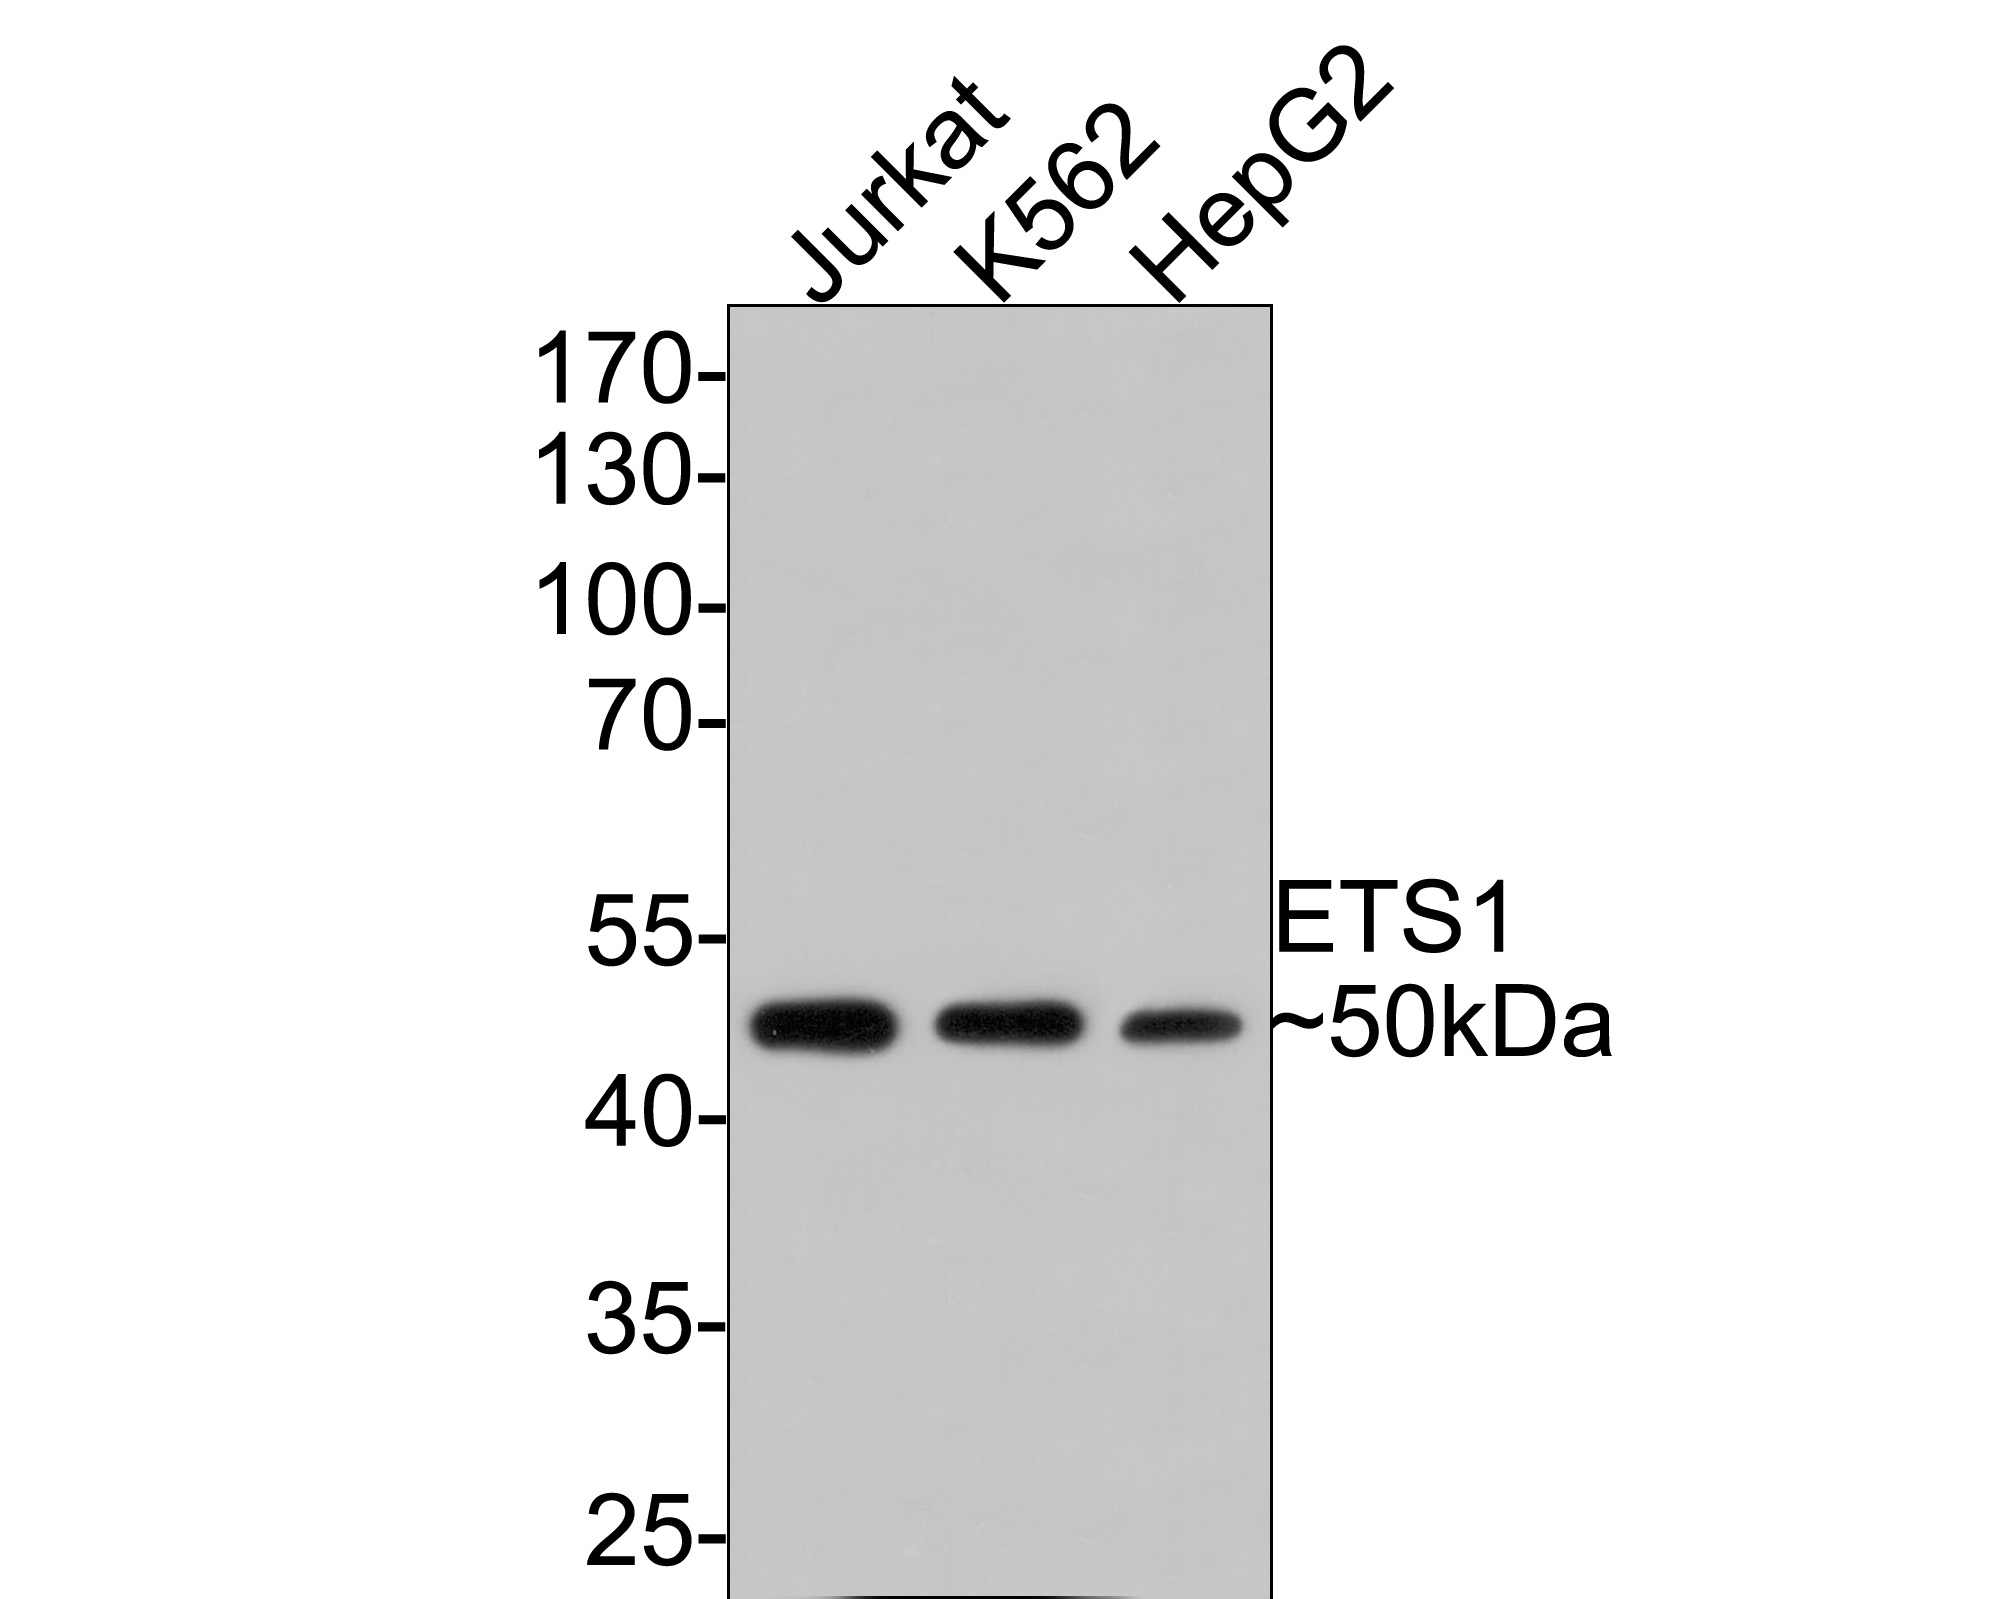 Western blot analysis of ETS1 on different cell using anti-ETS1 antibody at 1/1,000 dilution.<br /> Positive control: <br /> Line1: Jurkat <br /> Line2: K562 <br /> Line3: HepG2